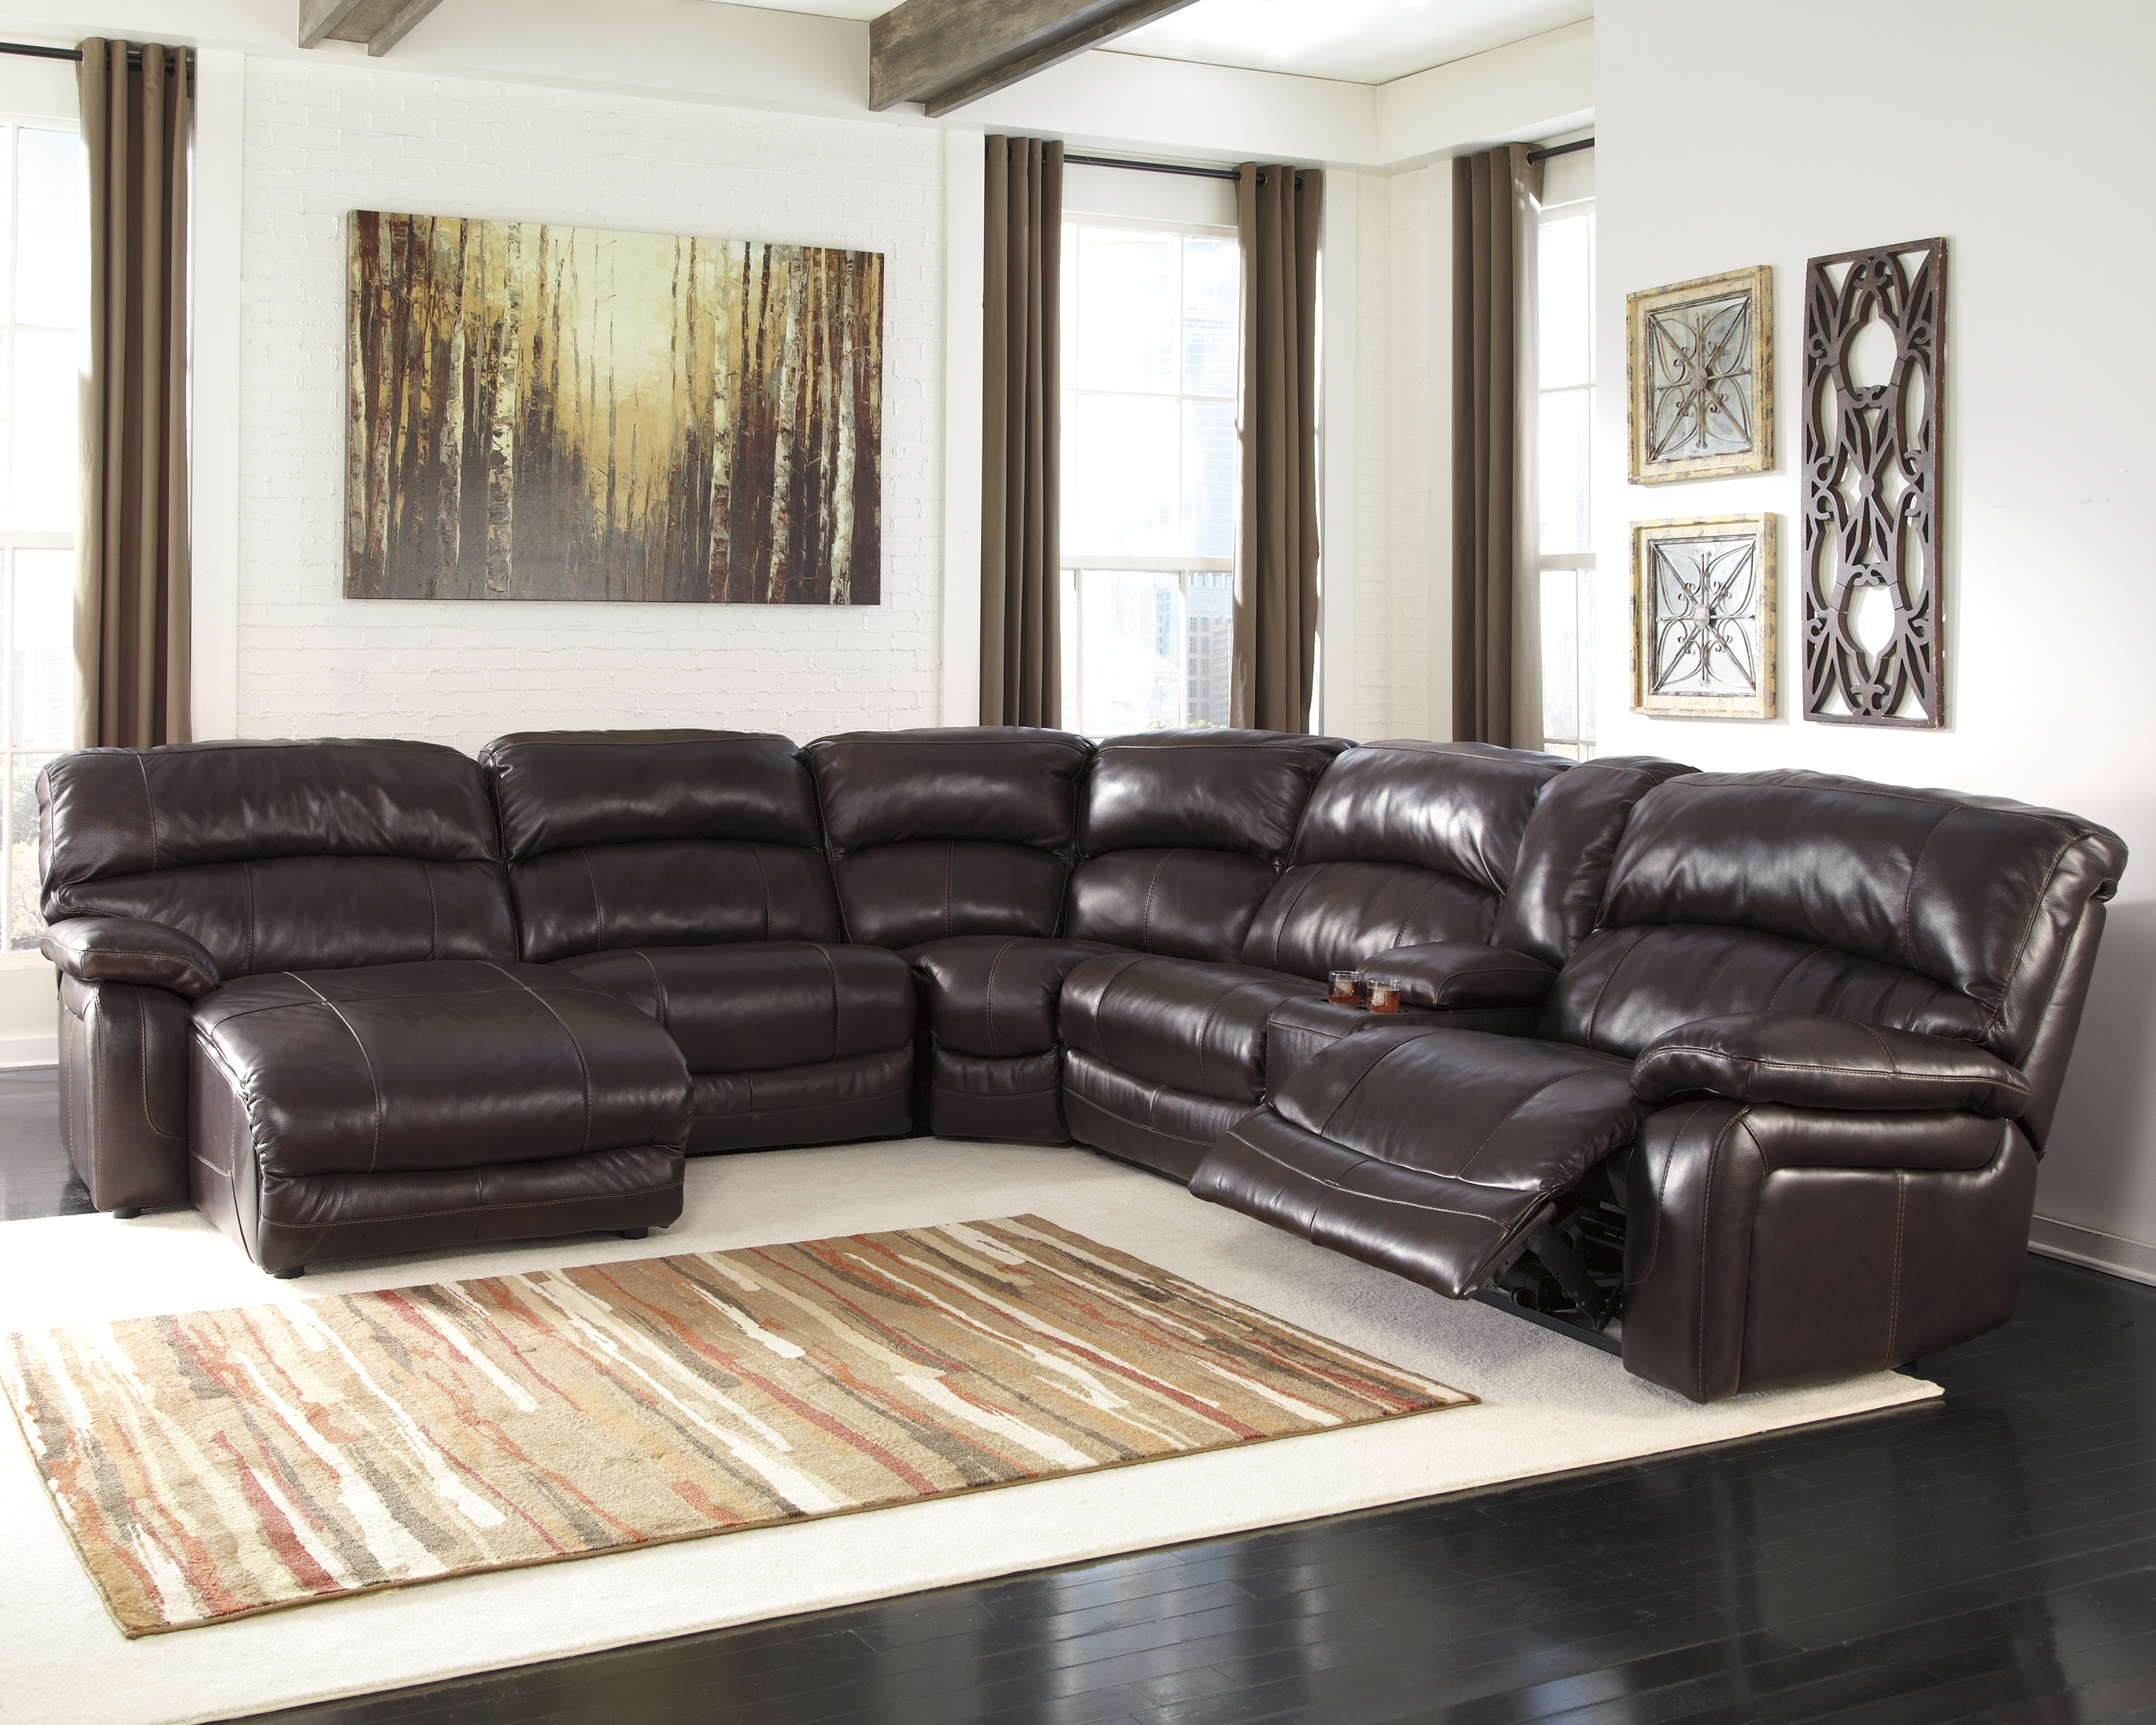 Leather Sectional Sofas With Recliners And Cup Holders Sectional Regarding Latest Chaise Recliners (View 4 of 15)